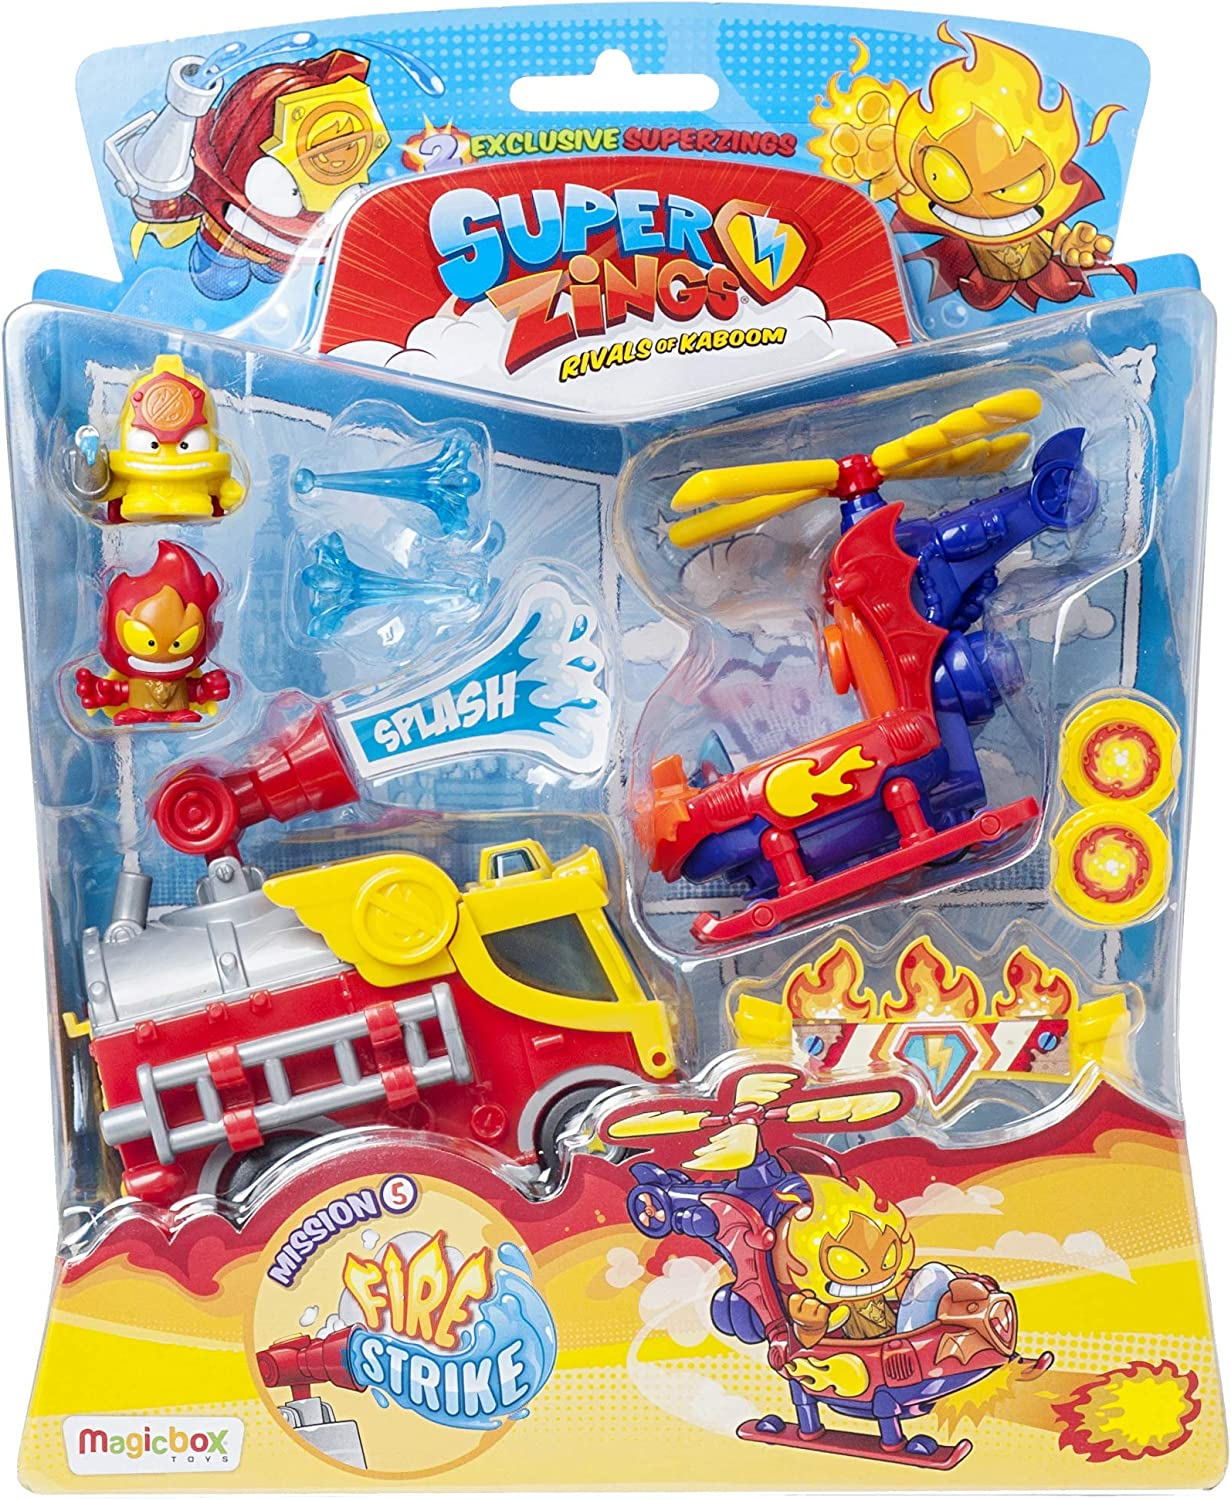 SuperZings- Blister Mission Vehículos y figuras coleccionables, Multicolor (Magic Box PSZSB216IN50): Amazon.es: Juguetes y juegos